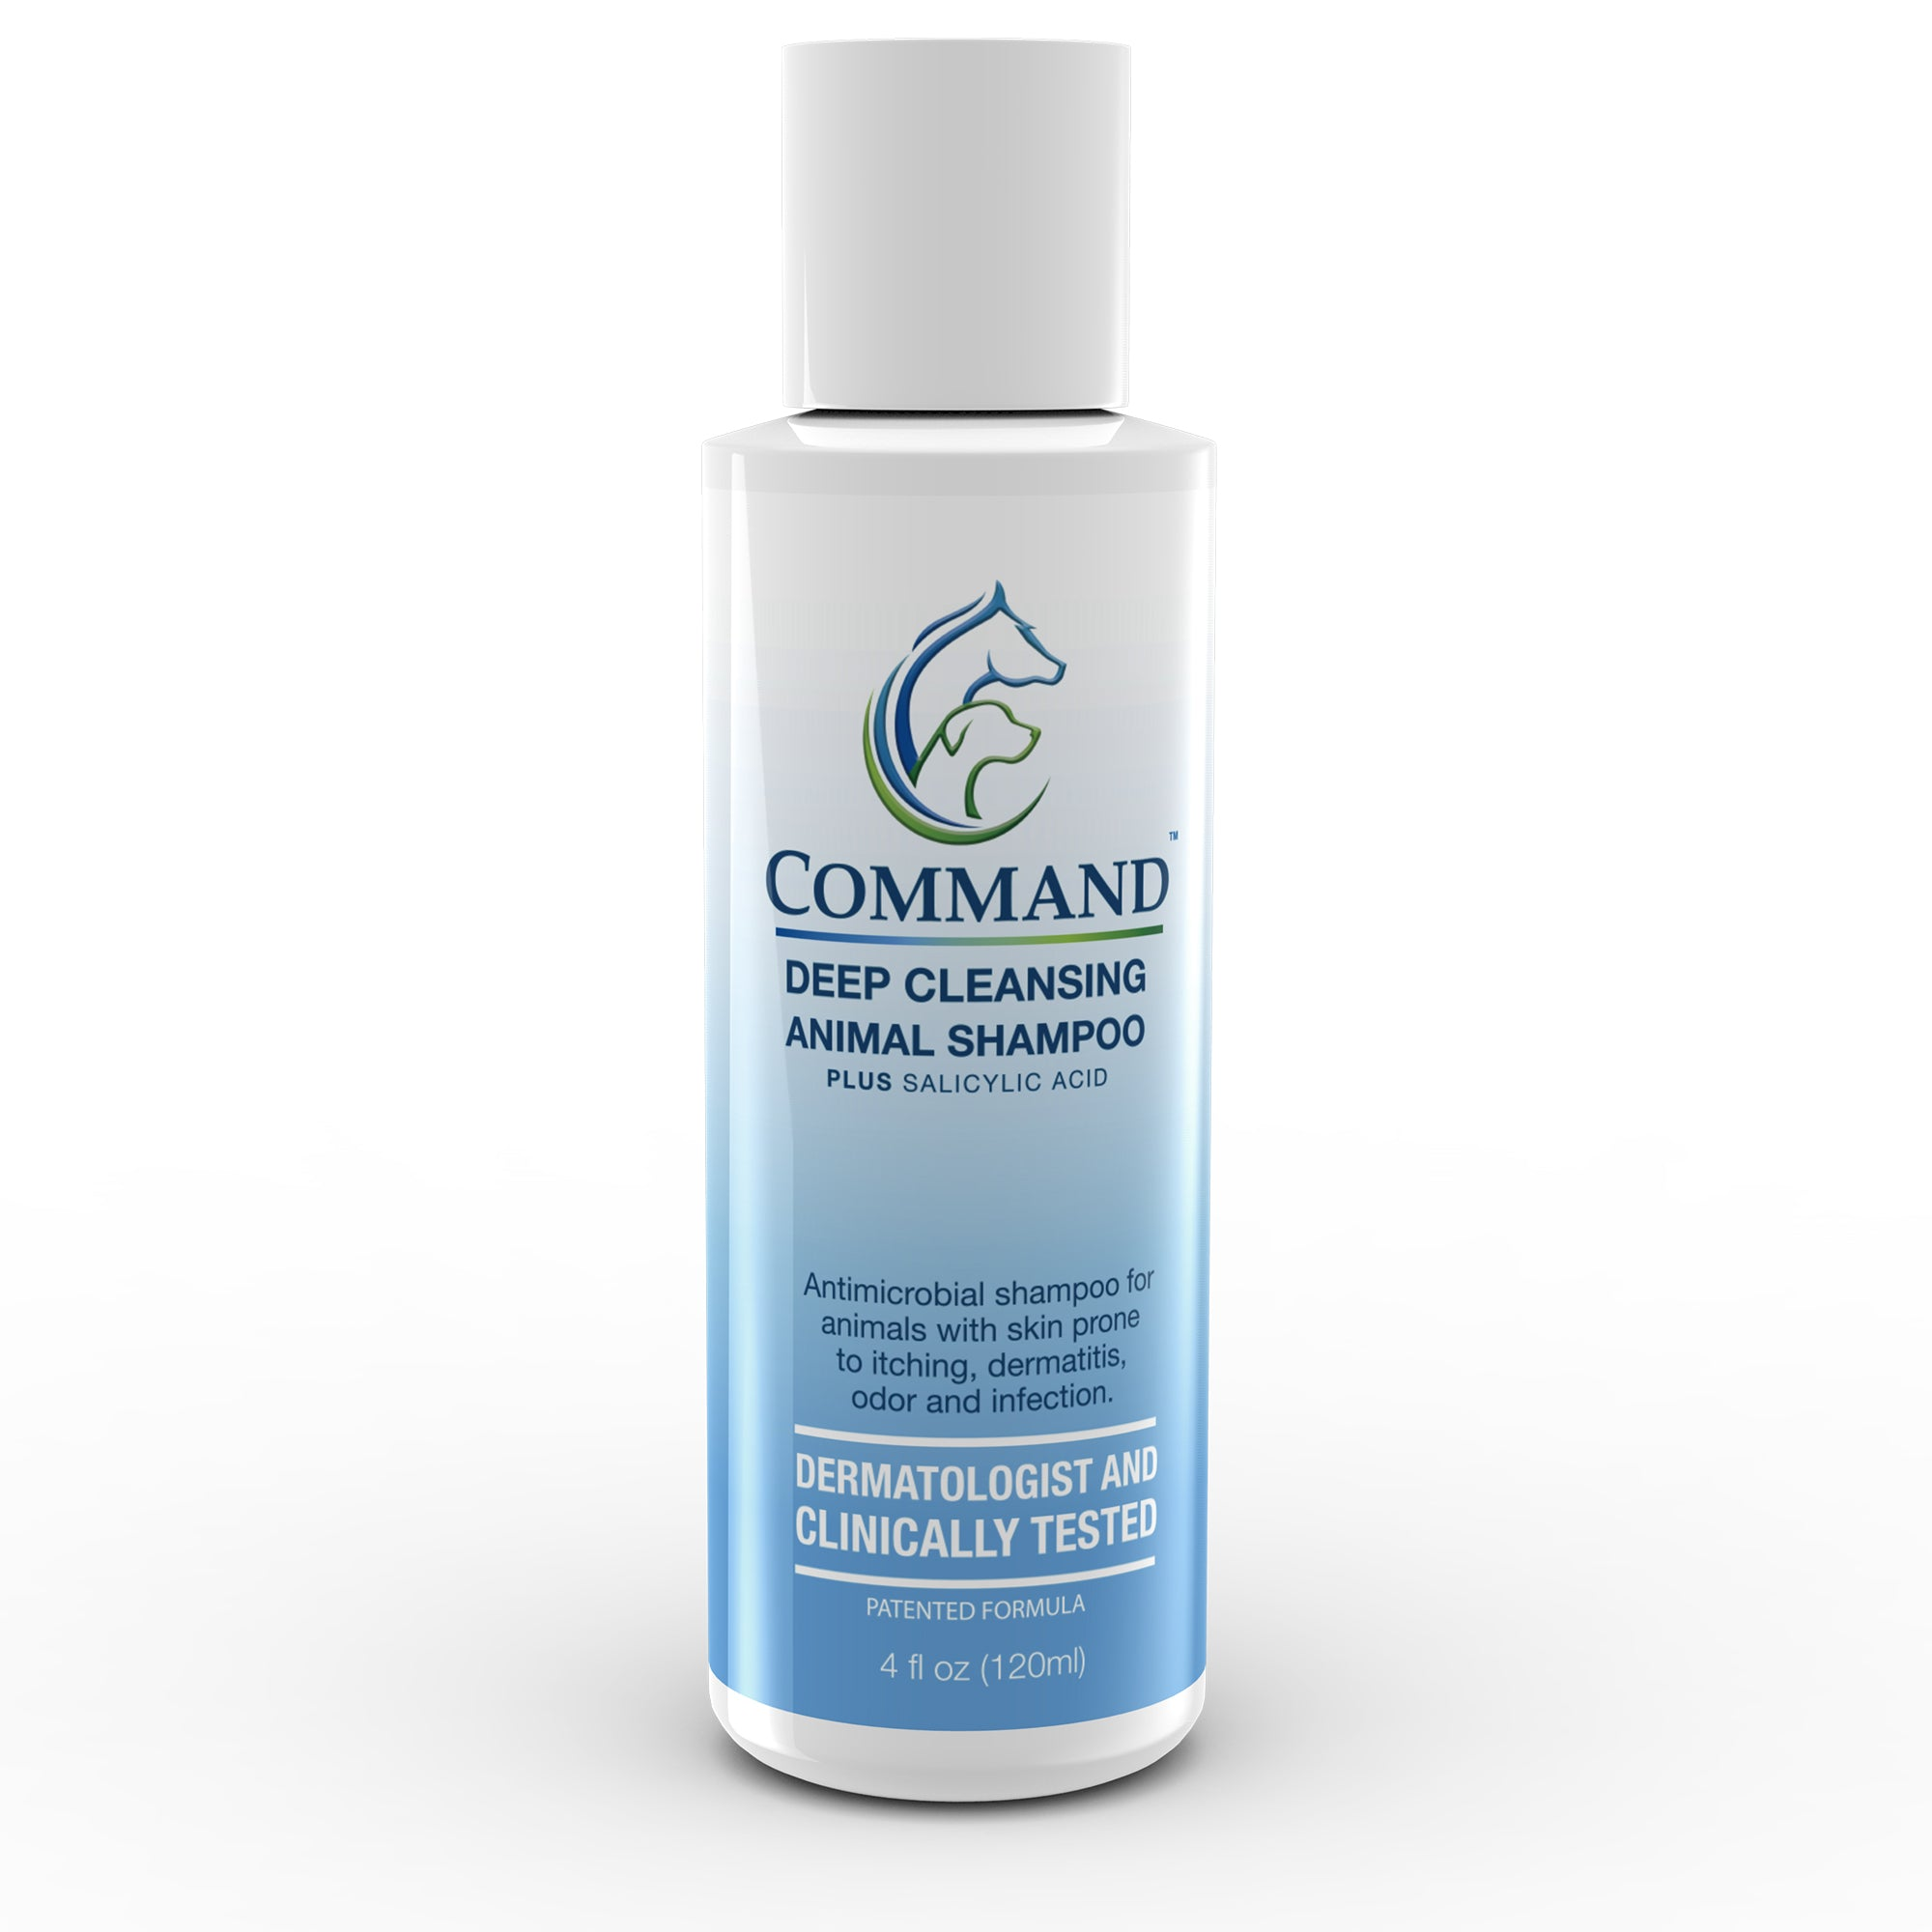 Command Shampoo for Animals